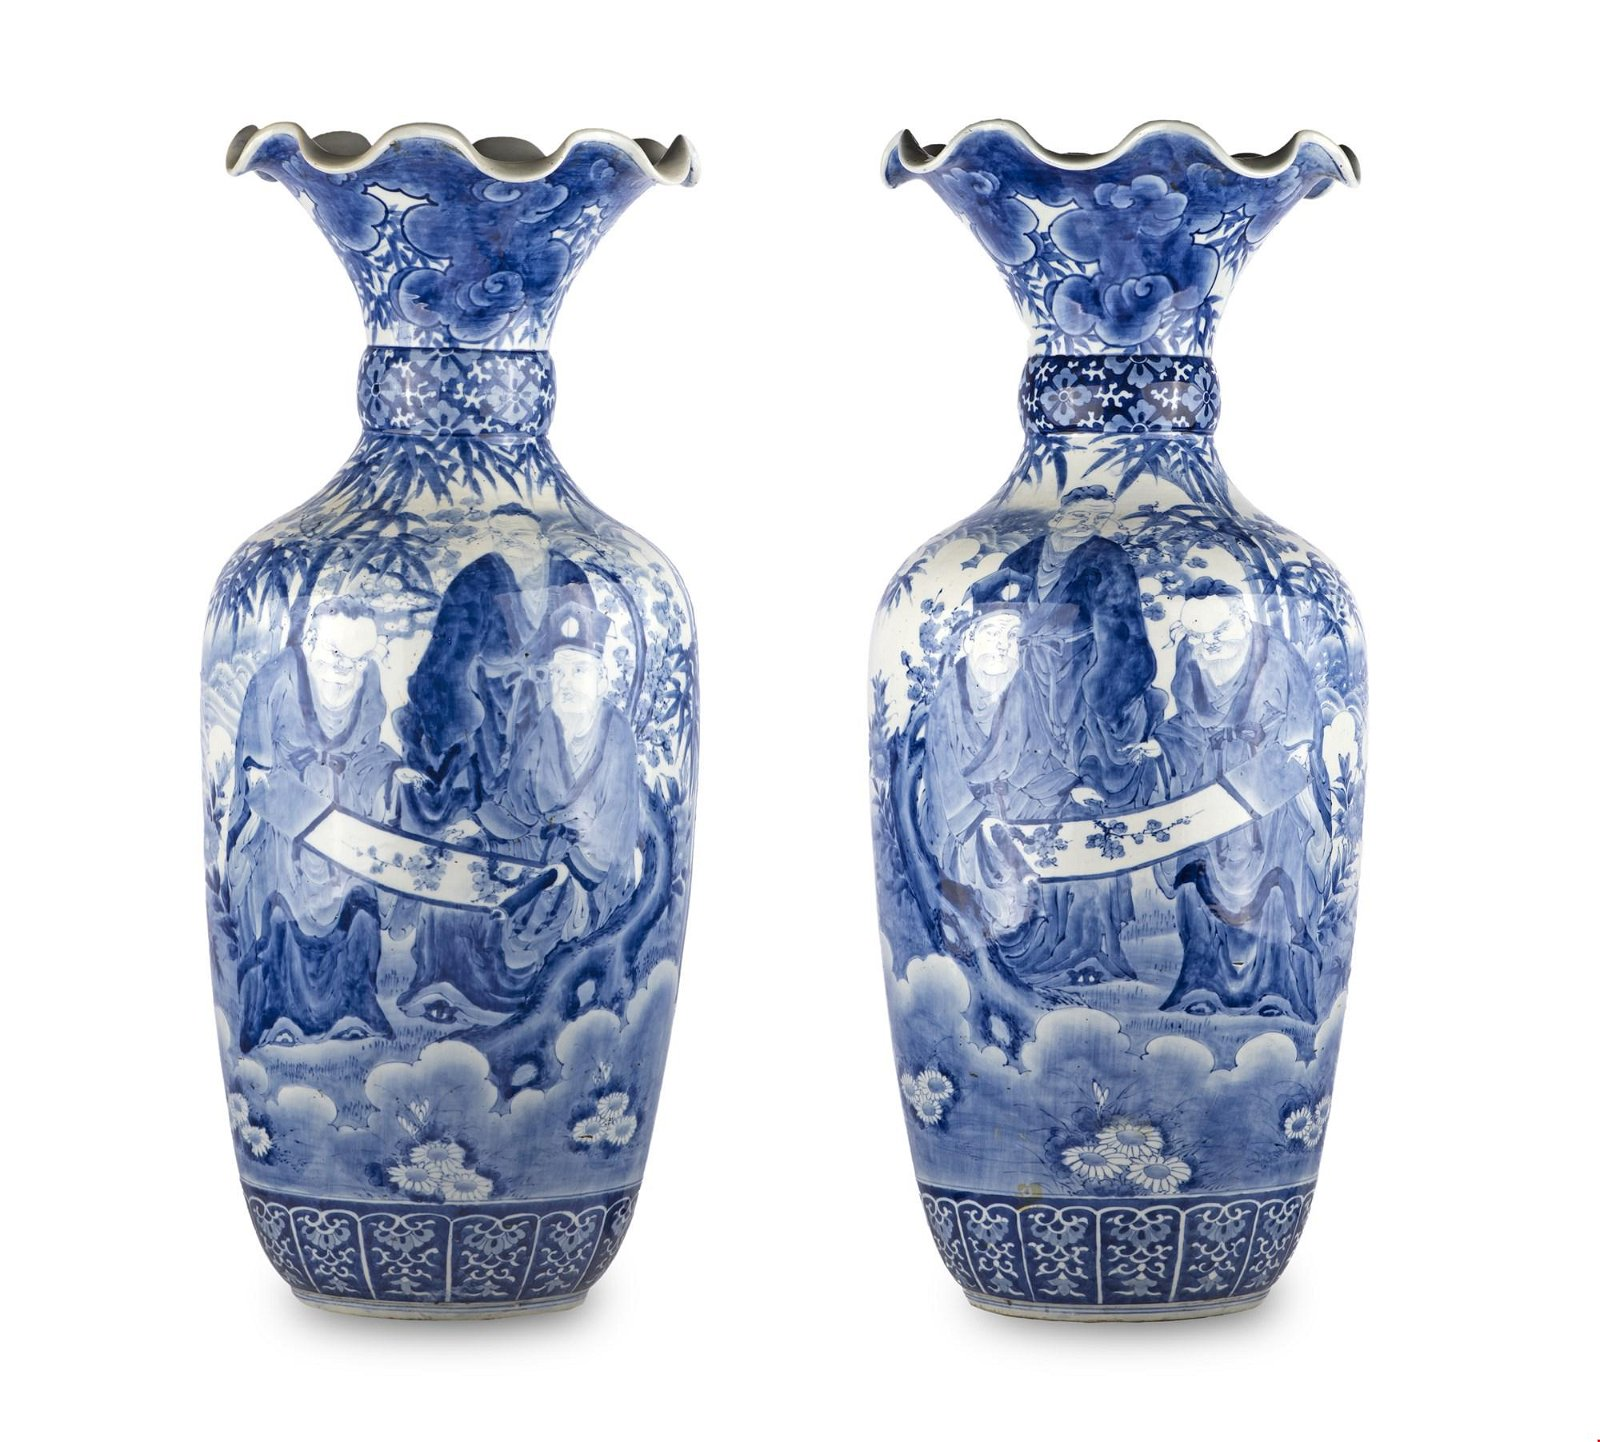 Pair of chinese vases from 19th century